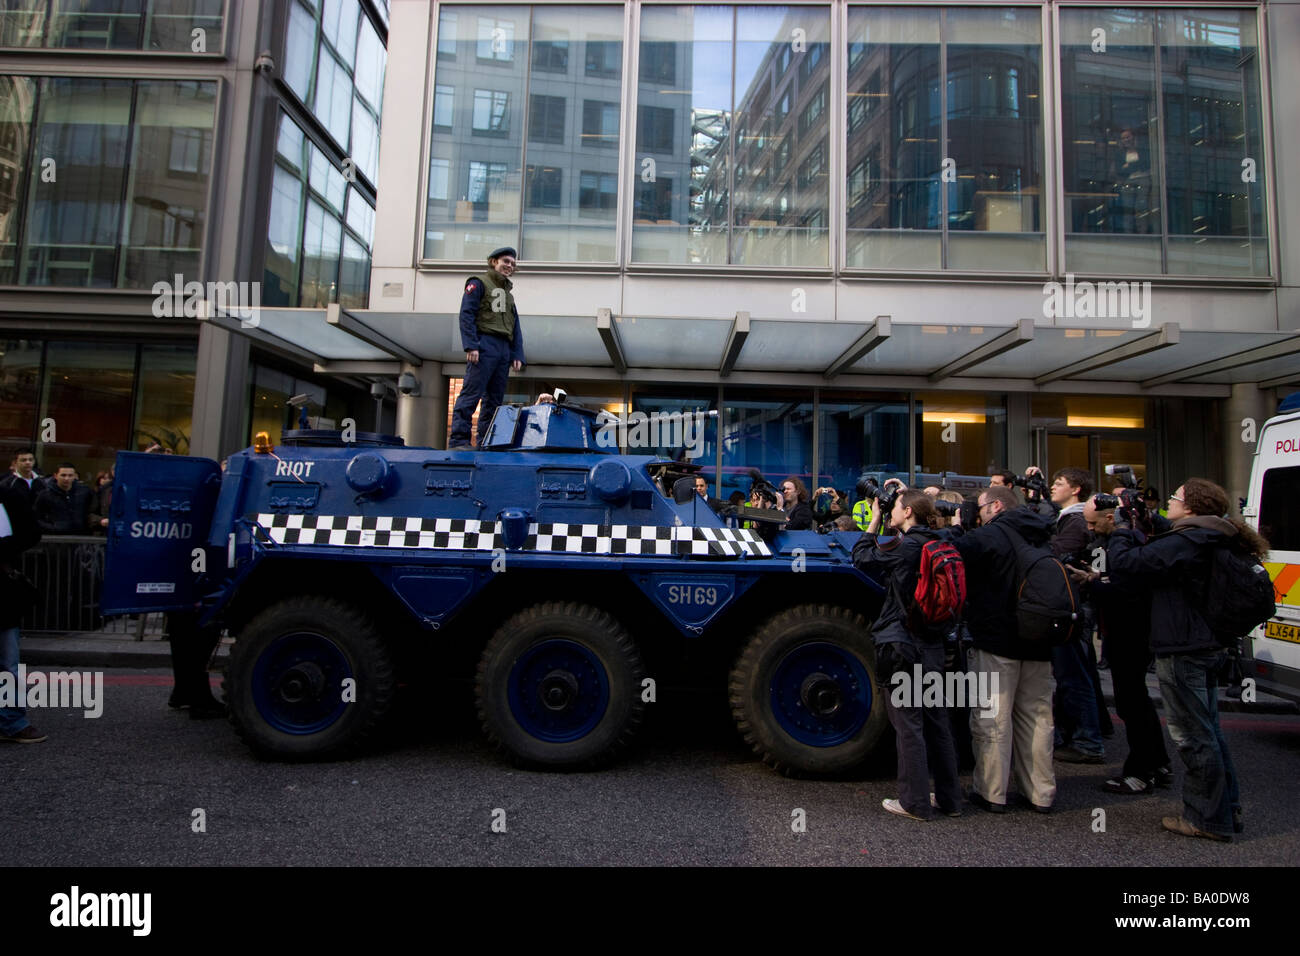 G20 demonstration London, space hijackers anarchist group in fake riot squad van outside rbs royal bank of scotland, - Stock Image